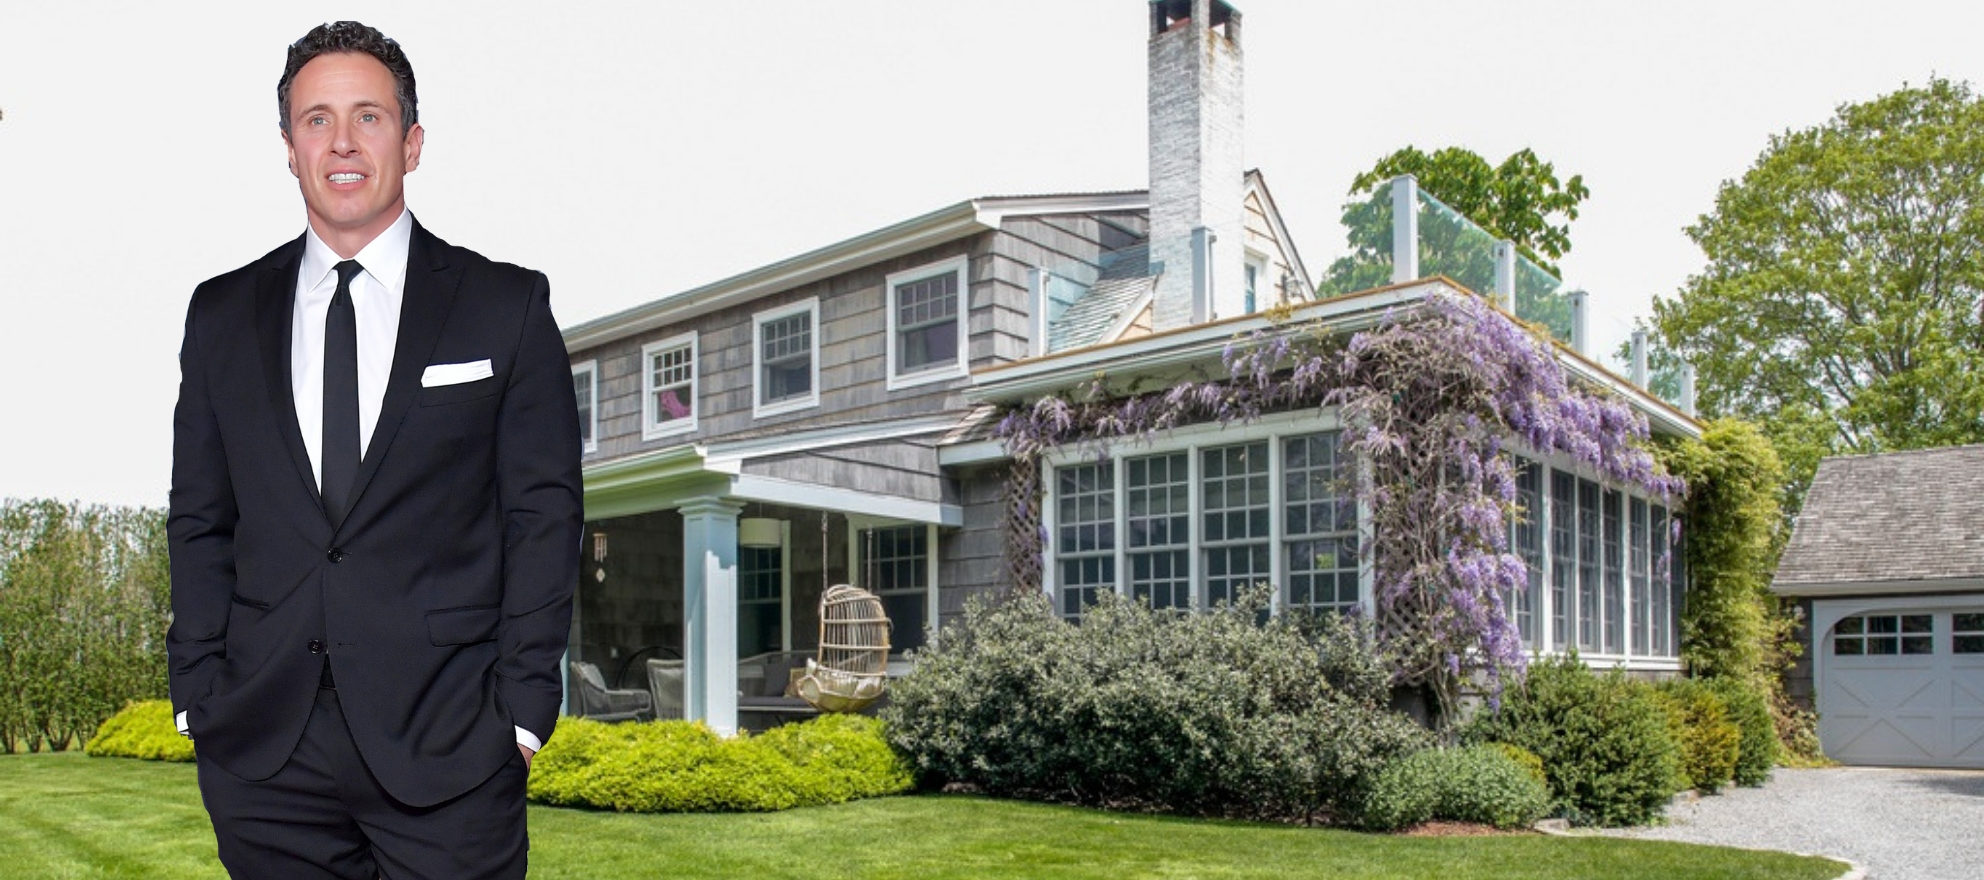 CNN anchor Chris Cuomo is selling his Hamptons home